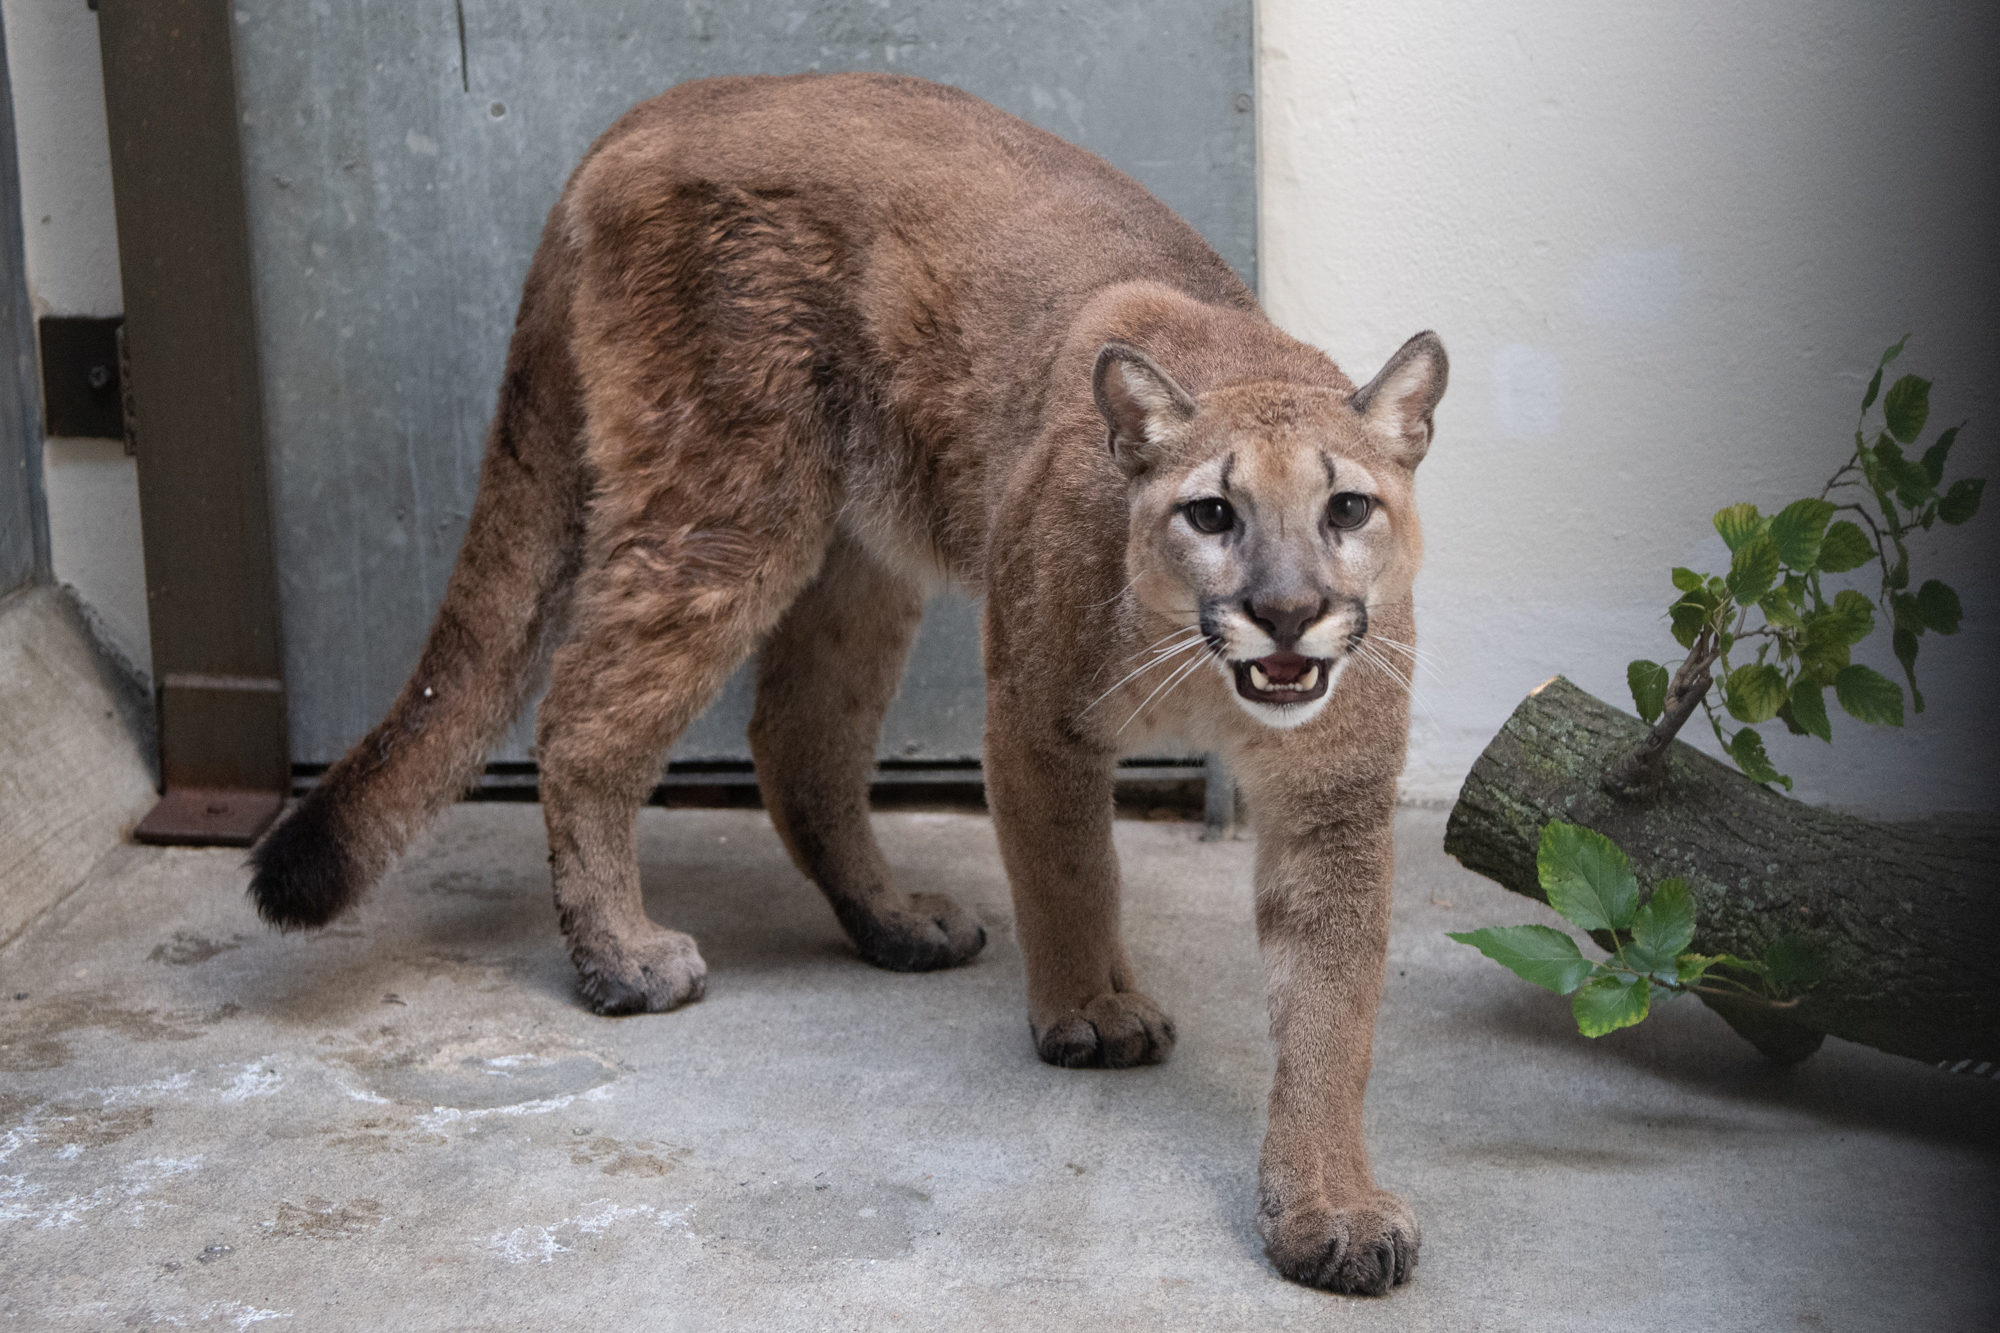 80-pound cougar removed from New York City home